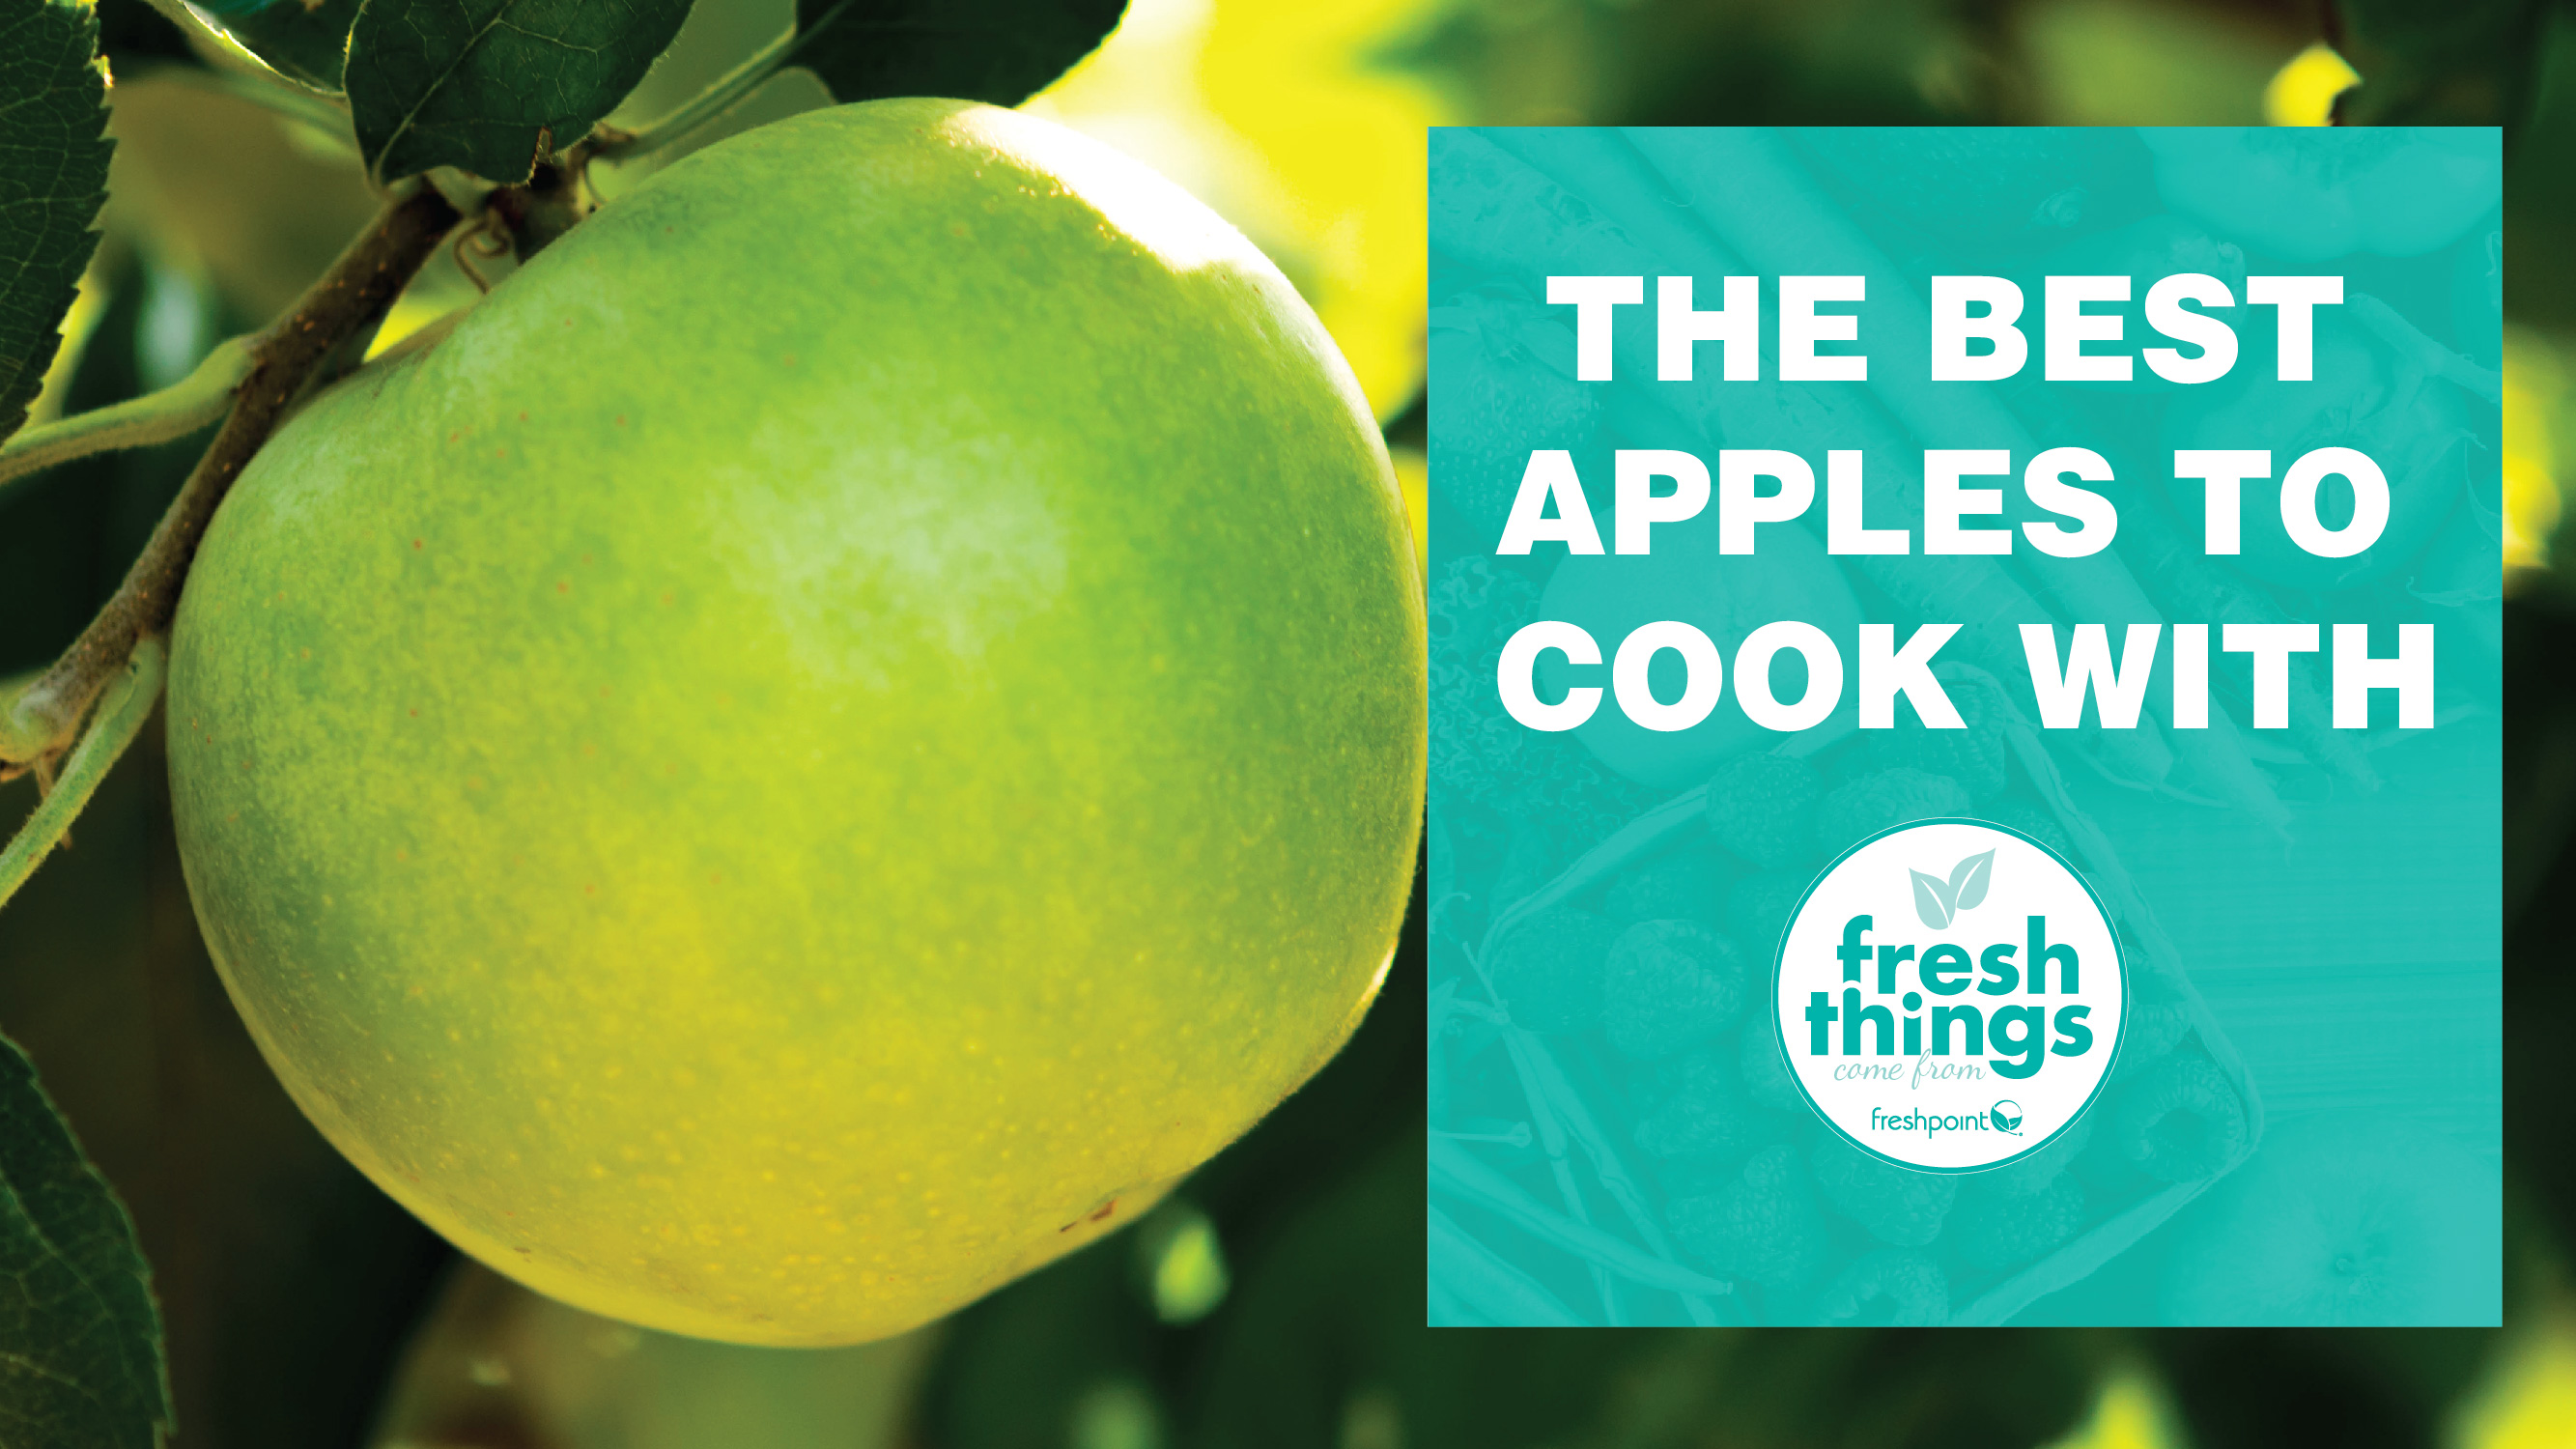 the-best-apples-to-cook-with